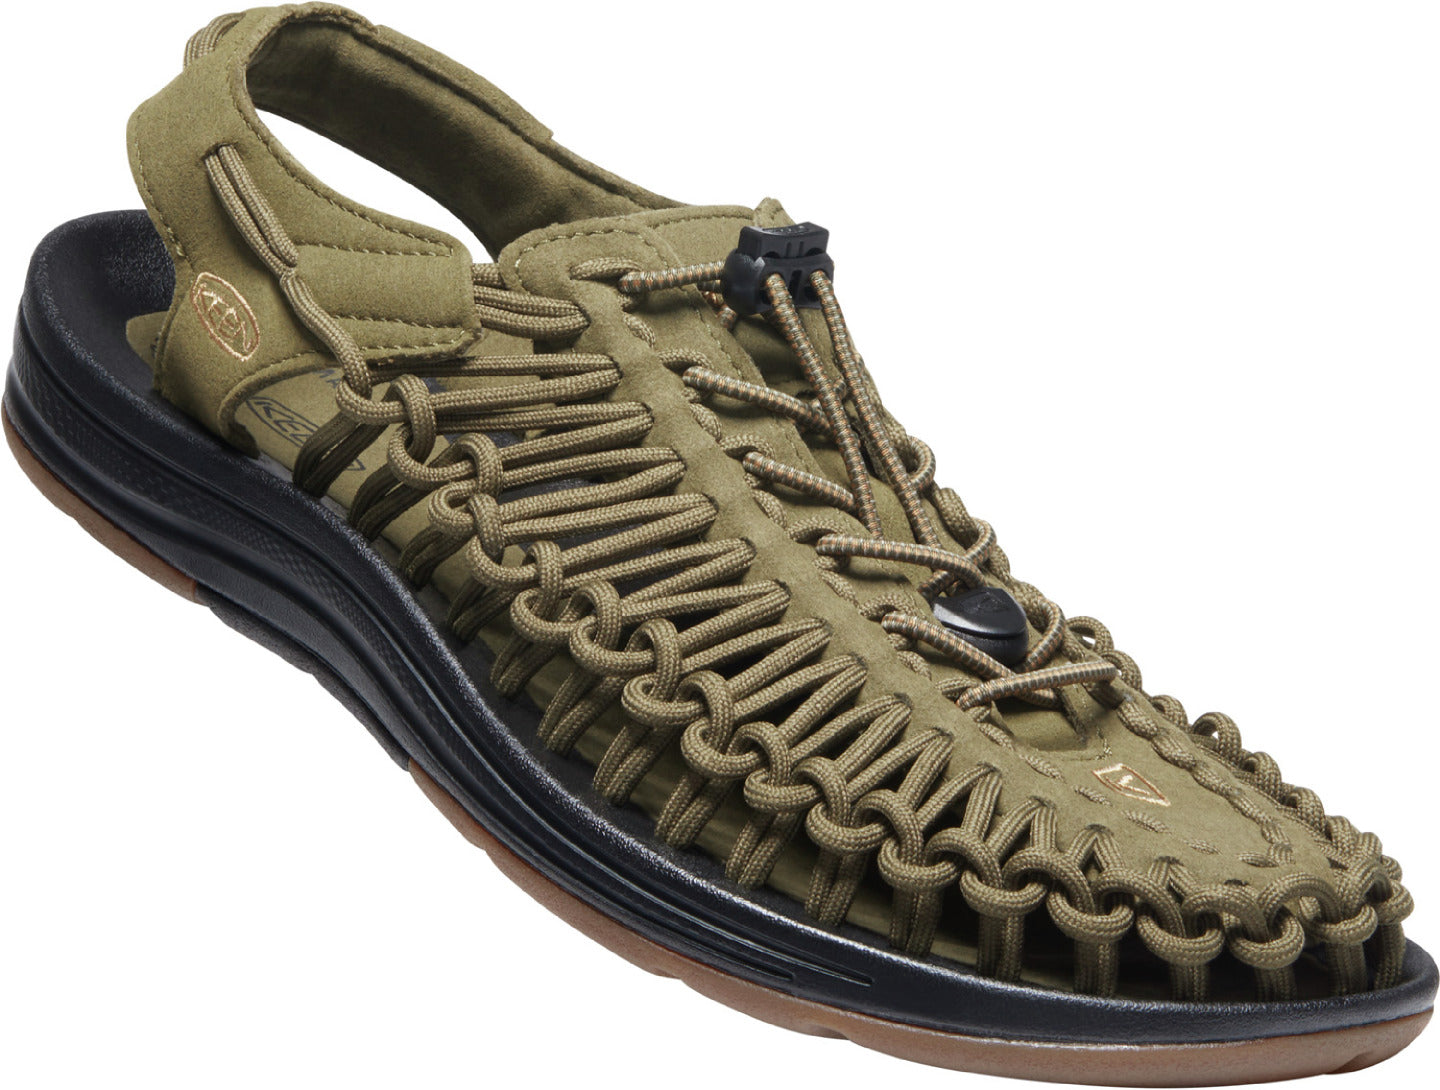 Men's KEEN Uneek Classic Two Cord Sandal in DARK OLIVE/BROWN SUGAR color from the front